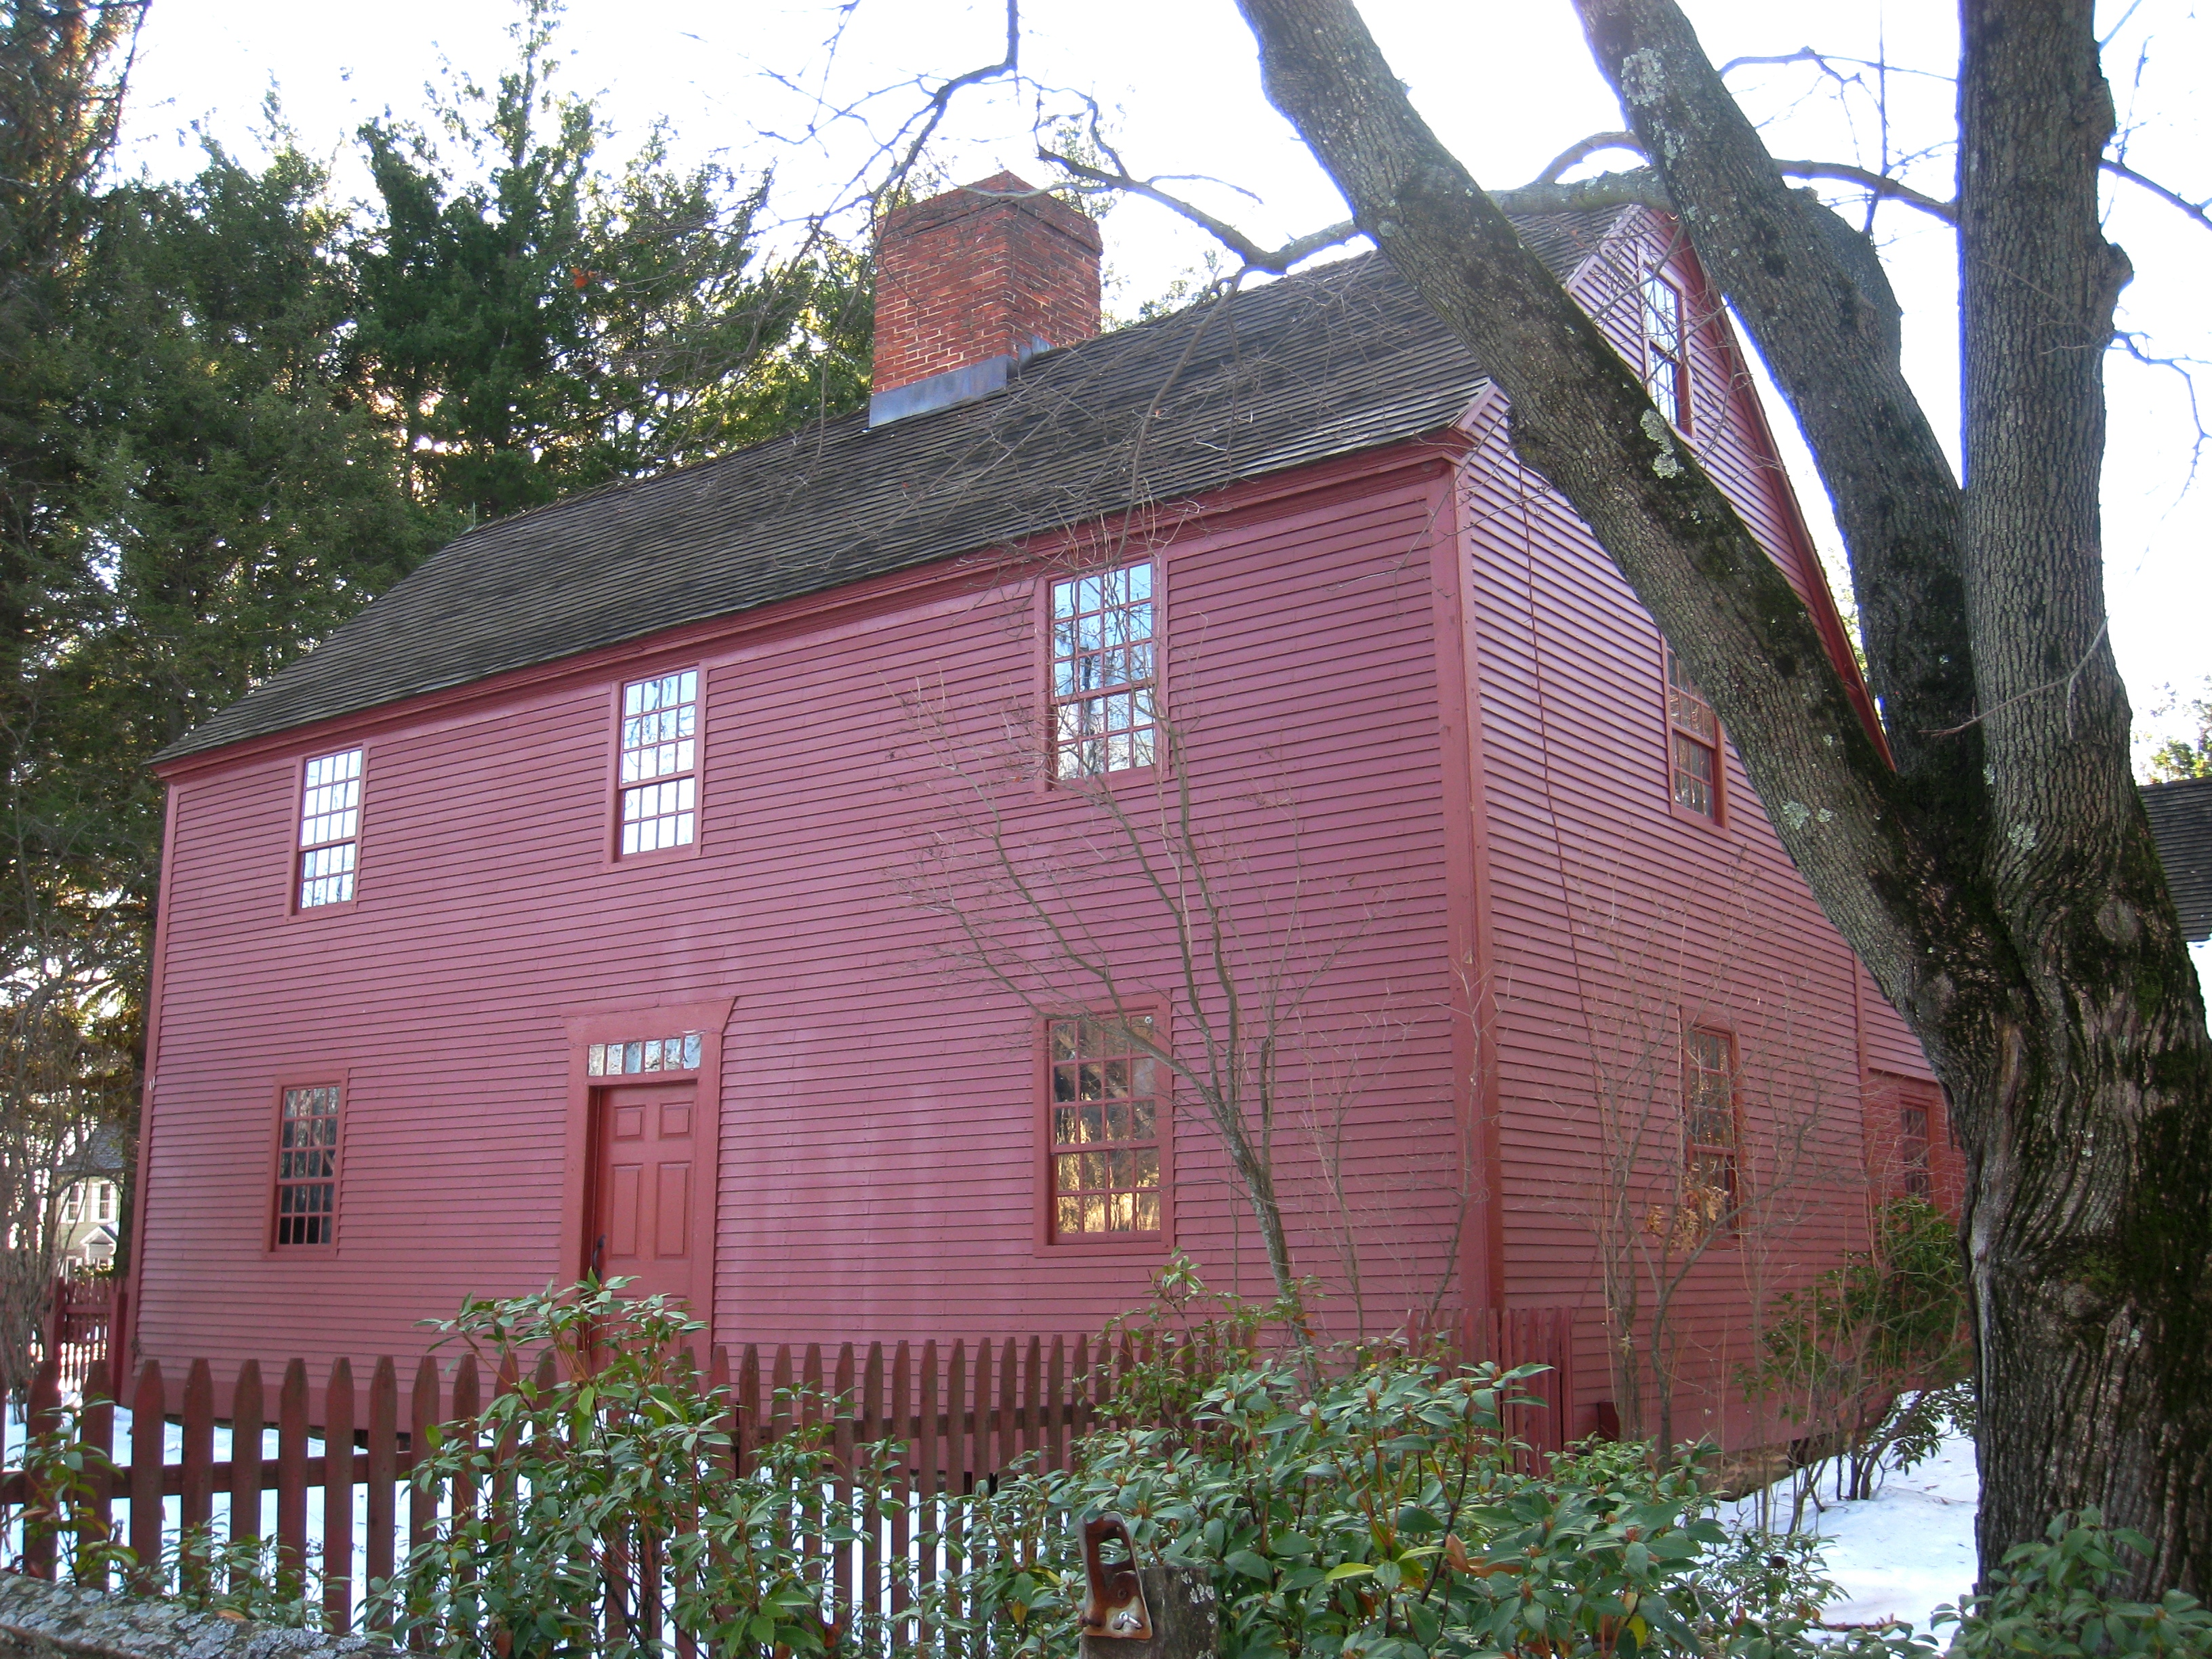 Noah Webster's birthplace has been a museum dedicated to his legacy since 1966.